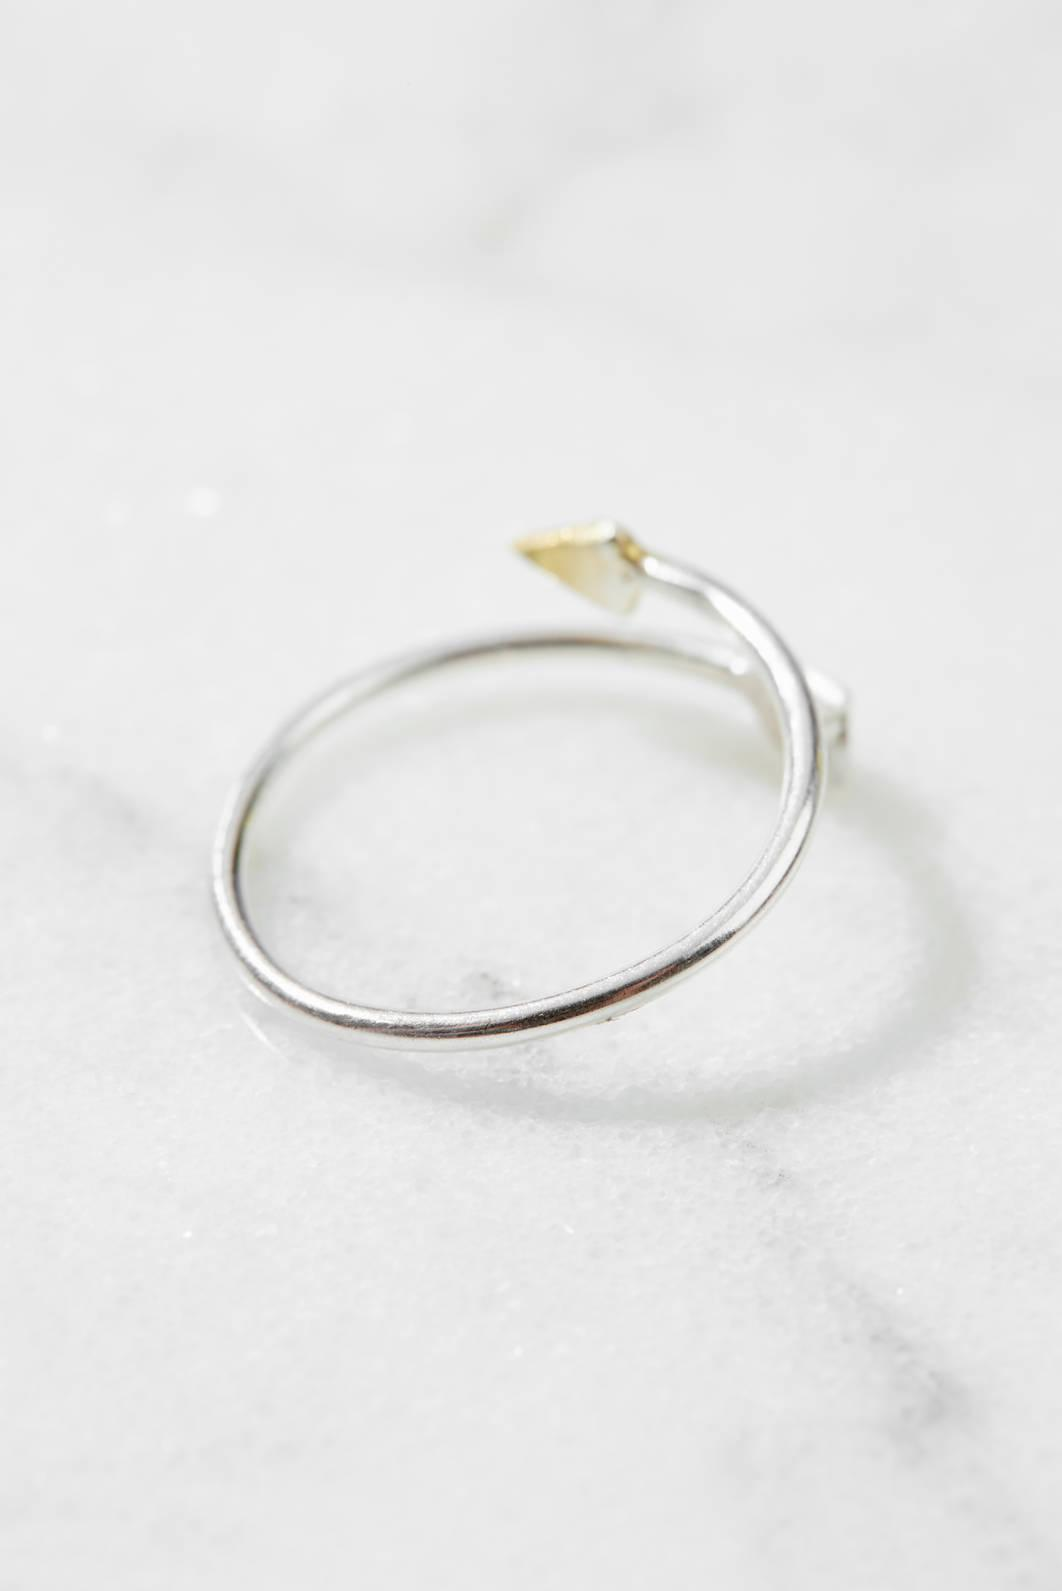 South Moon Under Open Arrow Ring Gold 1 Size RpepINyIiA